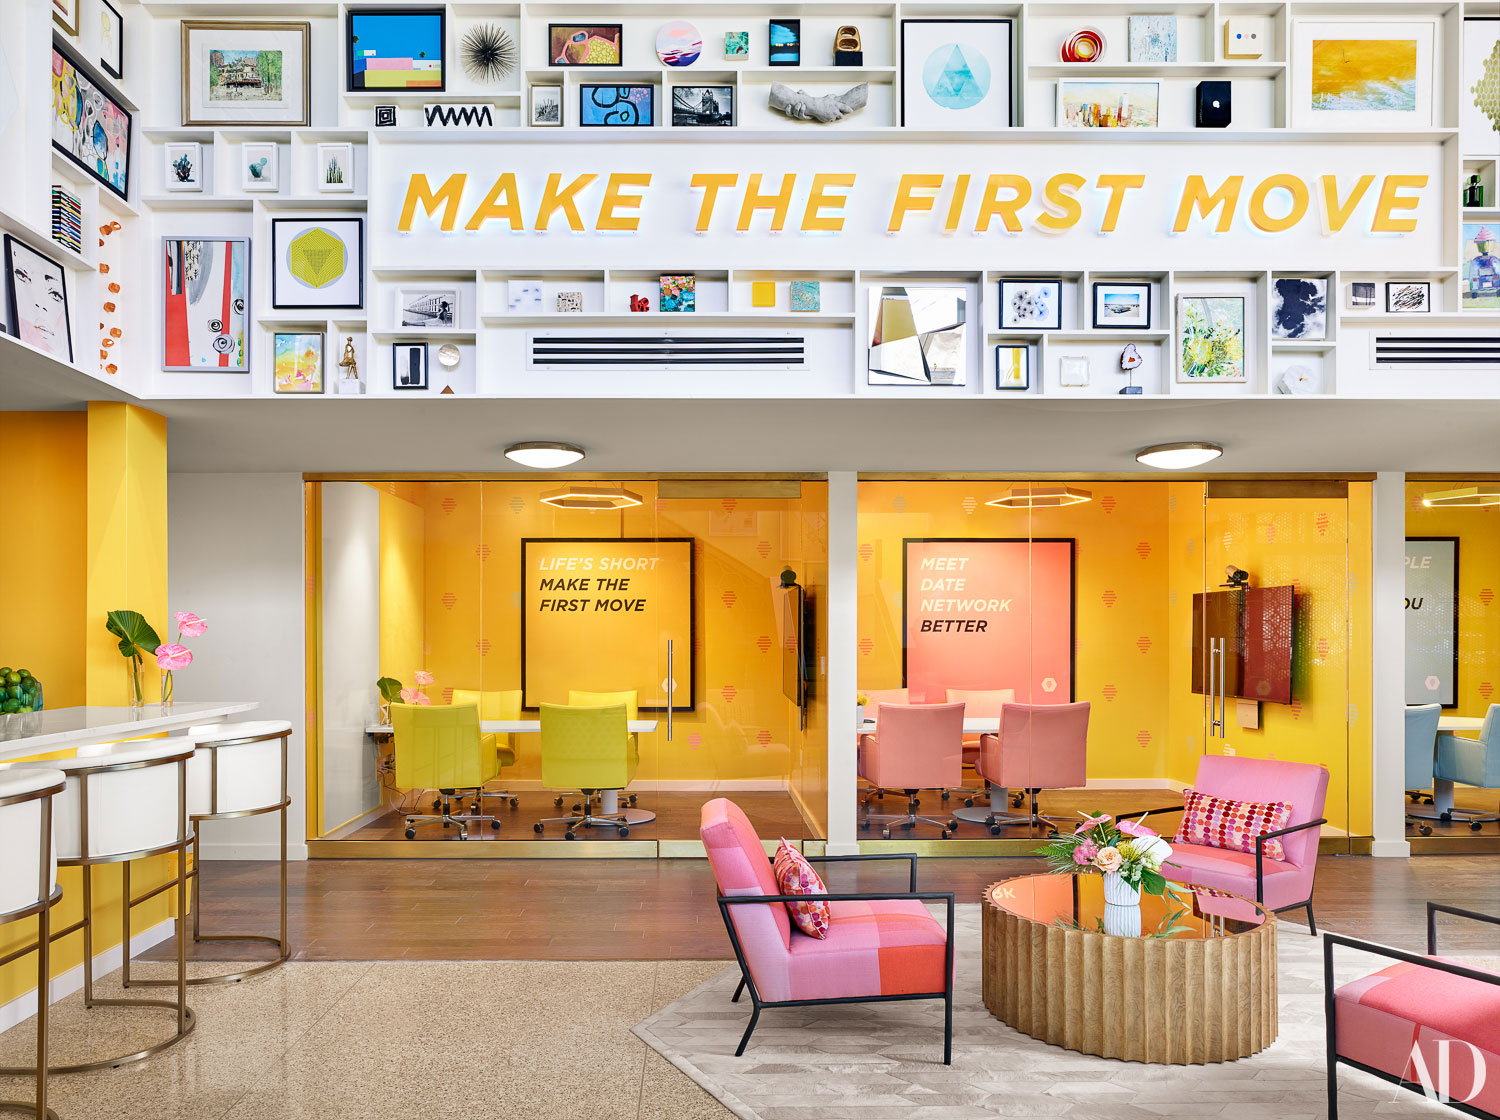 Cost to build a new house in austin - Inside Dating App Bumble S New Austin Headquarters